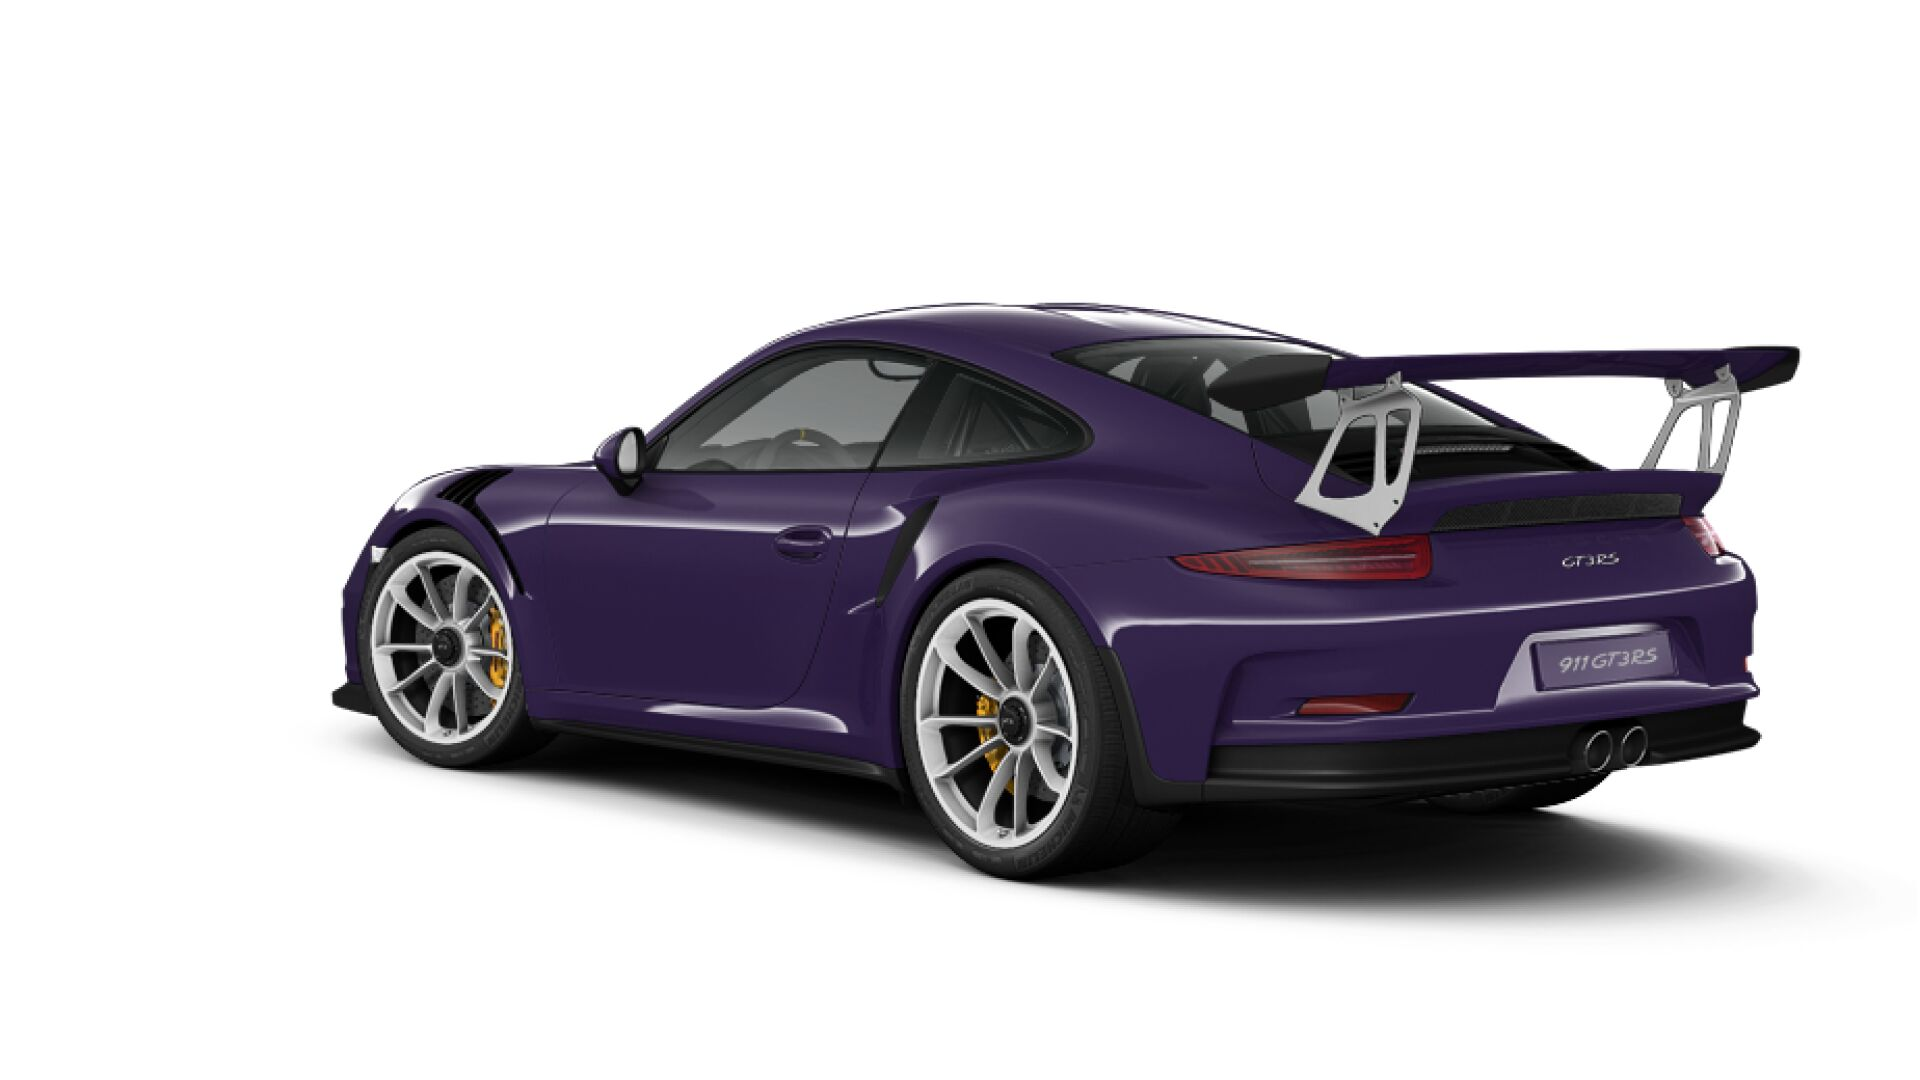 porsche 991 gt3 rs uk price drop in progress porsche valuations. Black Bedroom Furniture Sets. Home Design Ideas